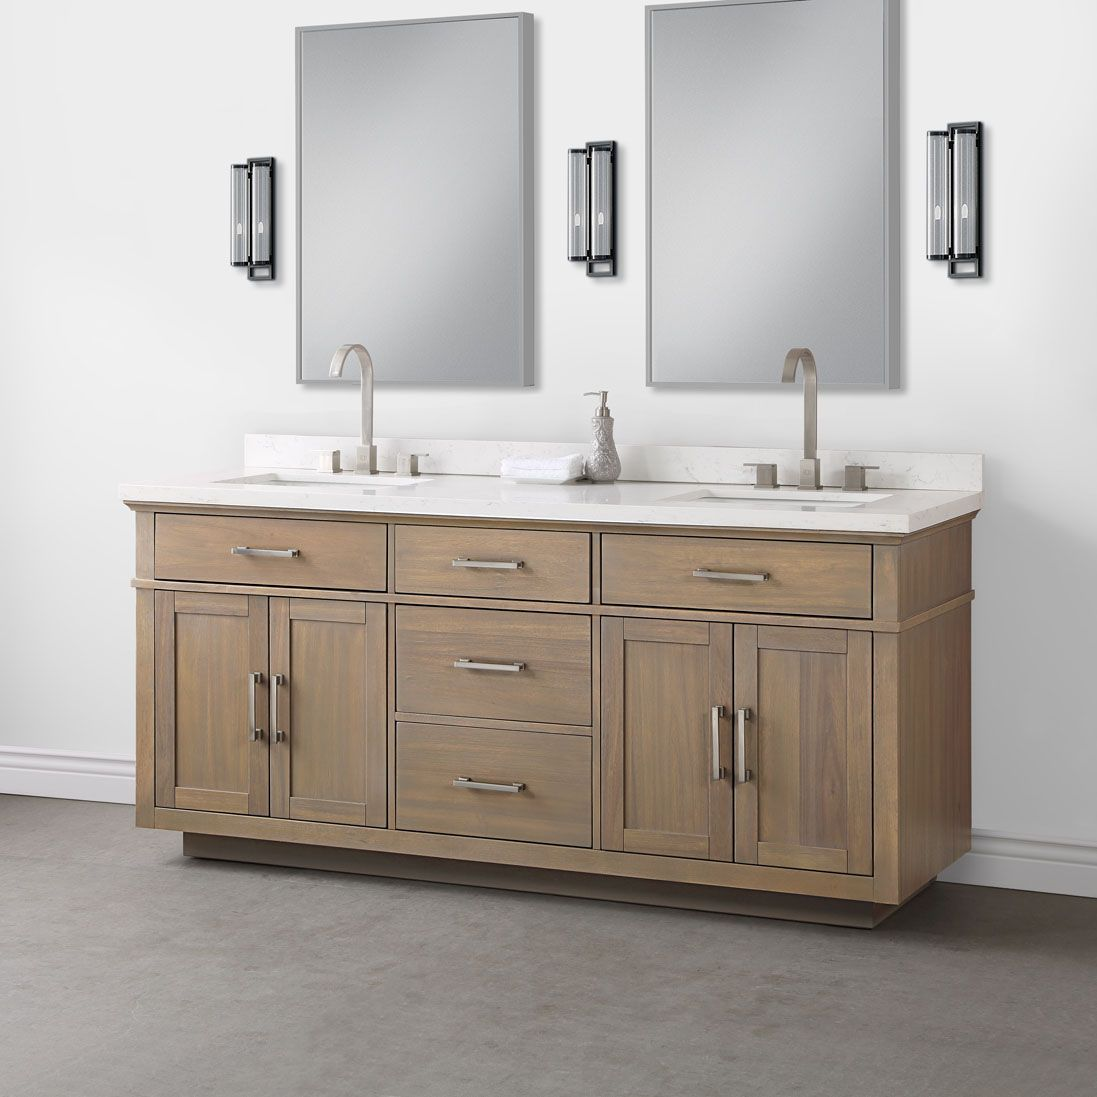 Mission Hills Bathroom Vanity Reviews Image Of Bathroom And Closet